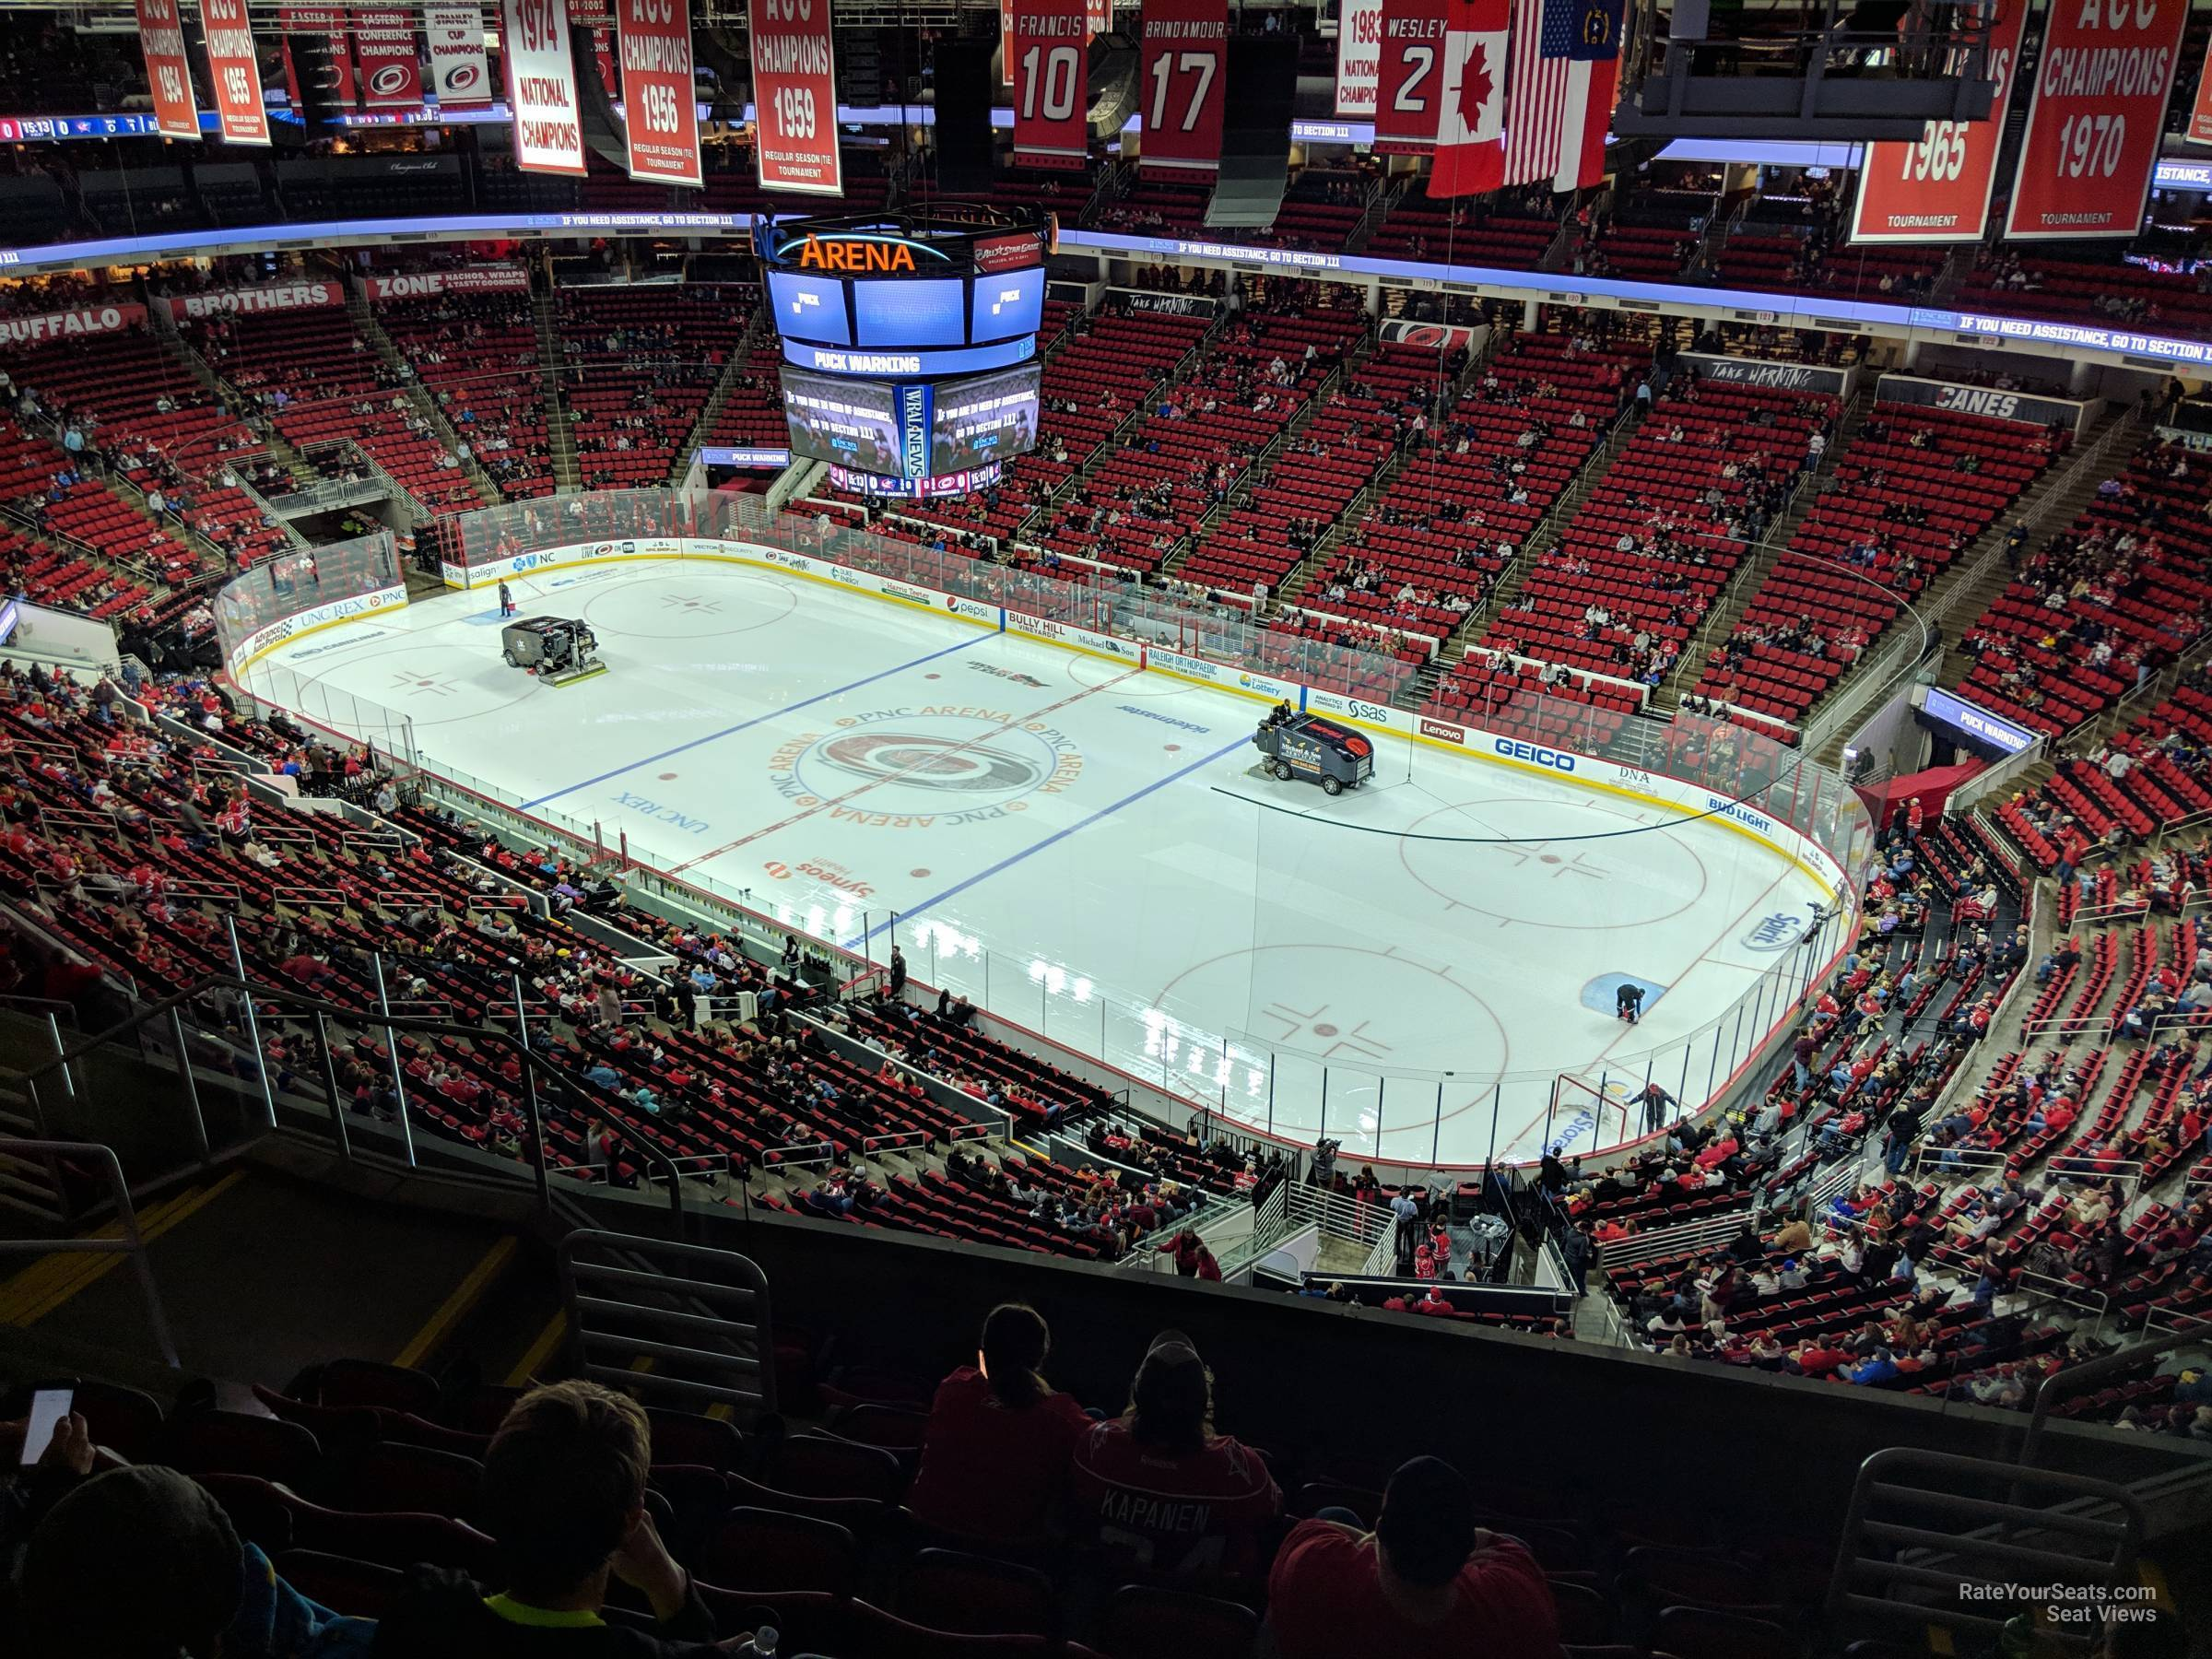 Section 338 seat view